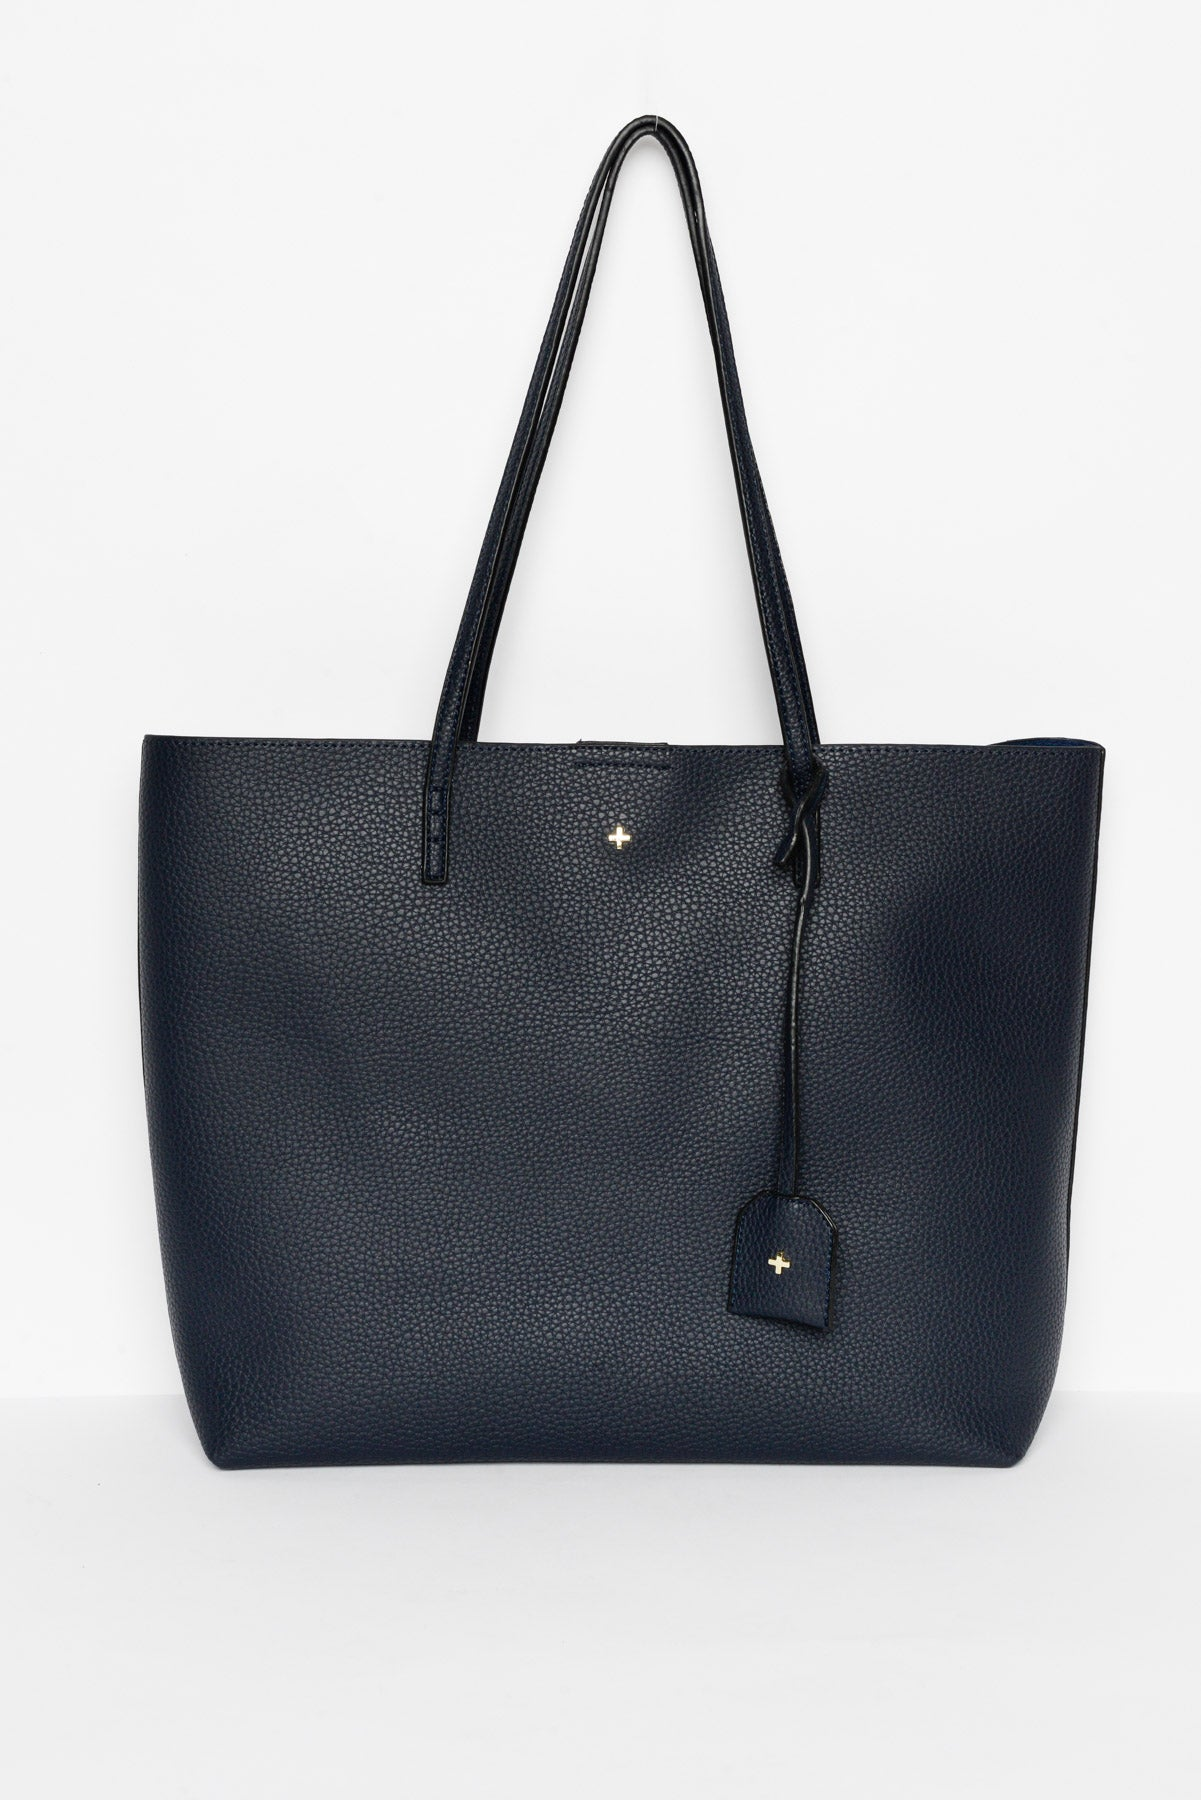 Saint Navy Vegan Leather Tote - Blue Bungalow